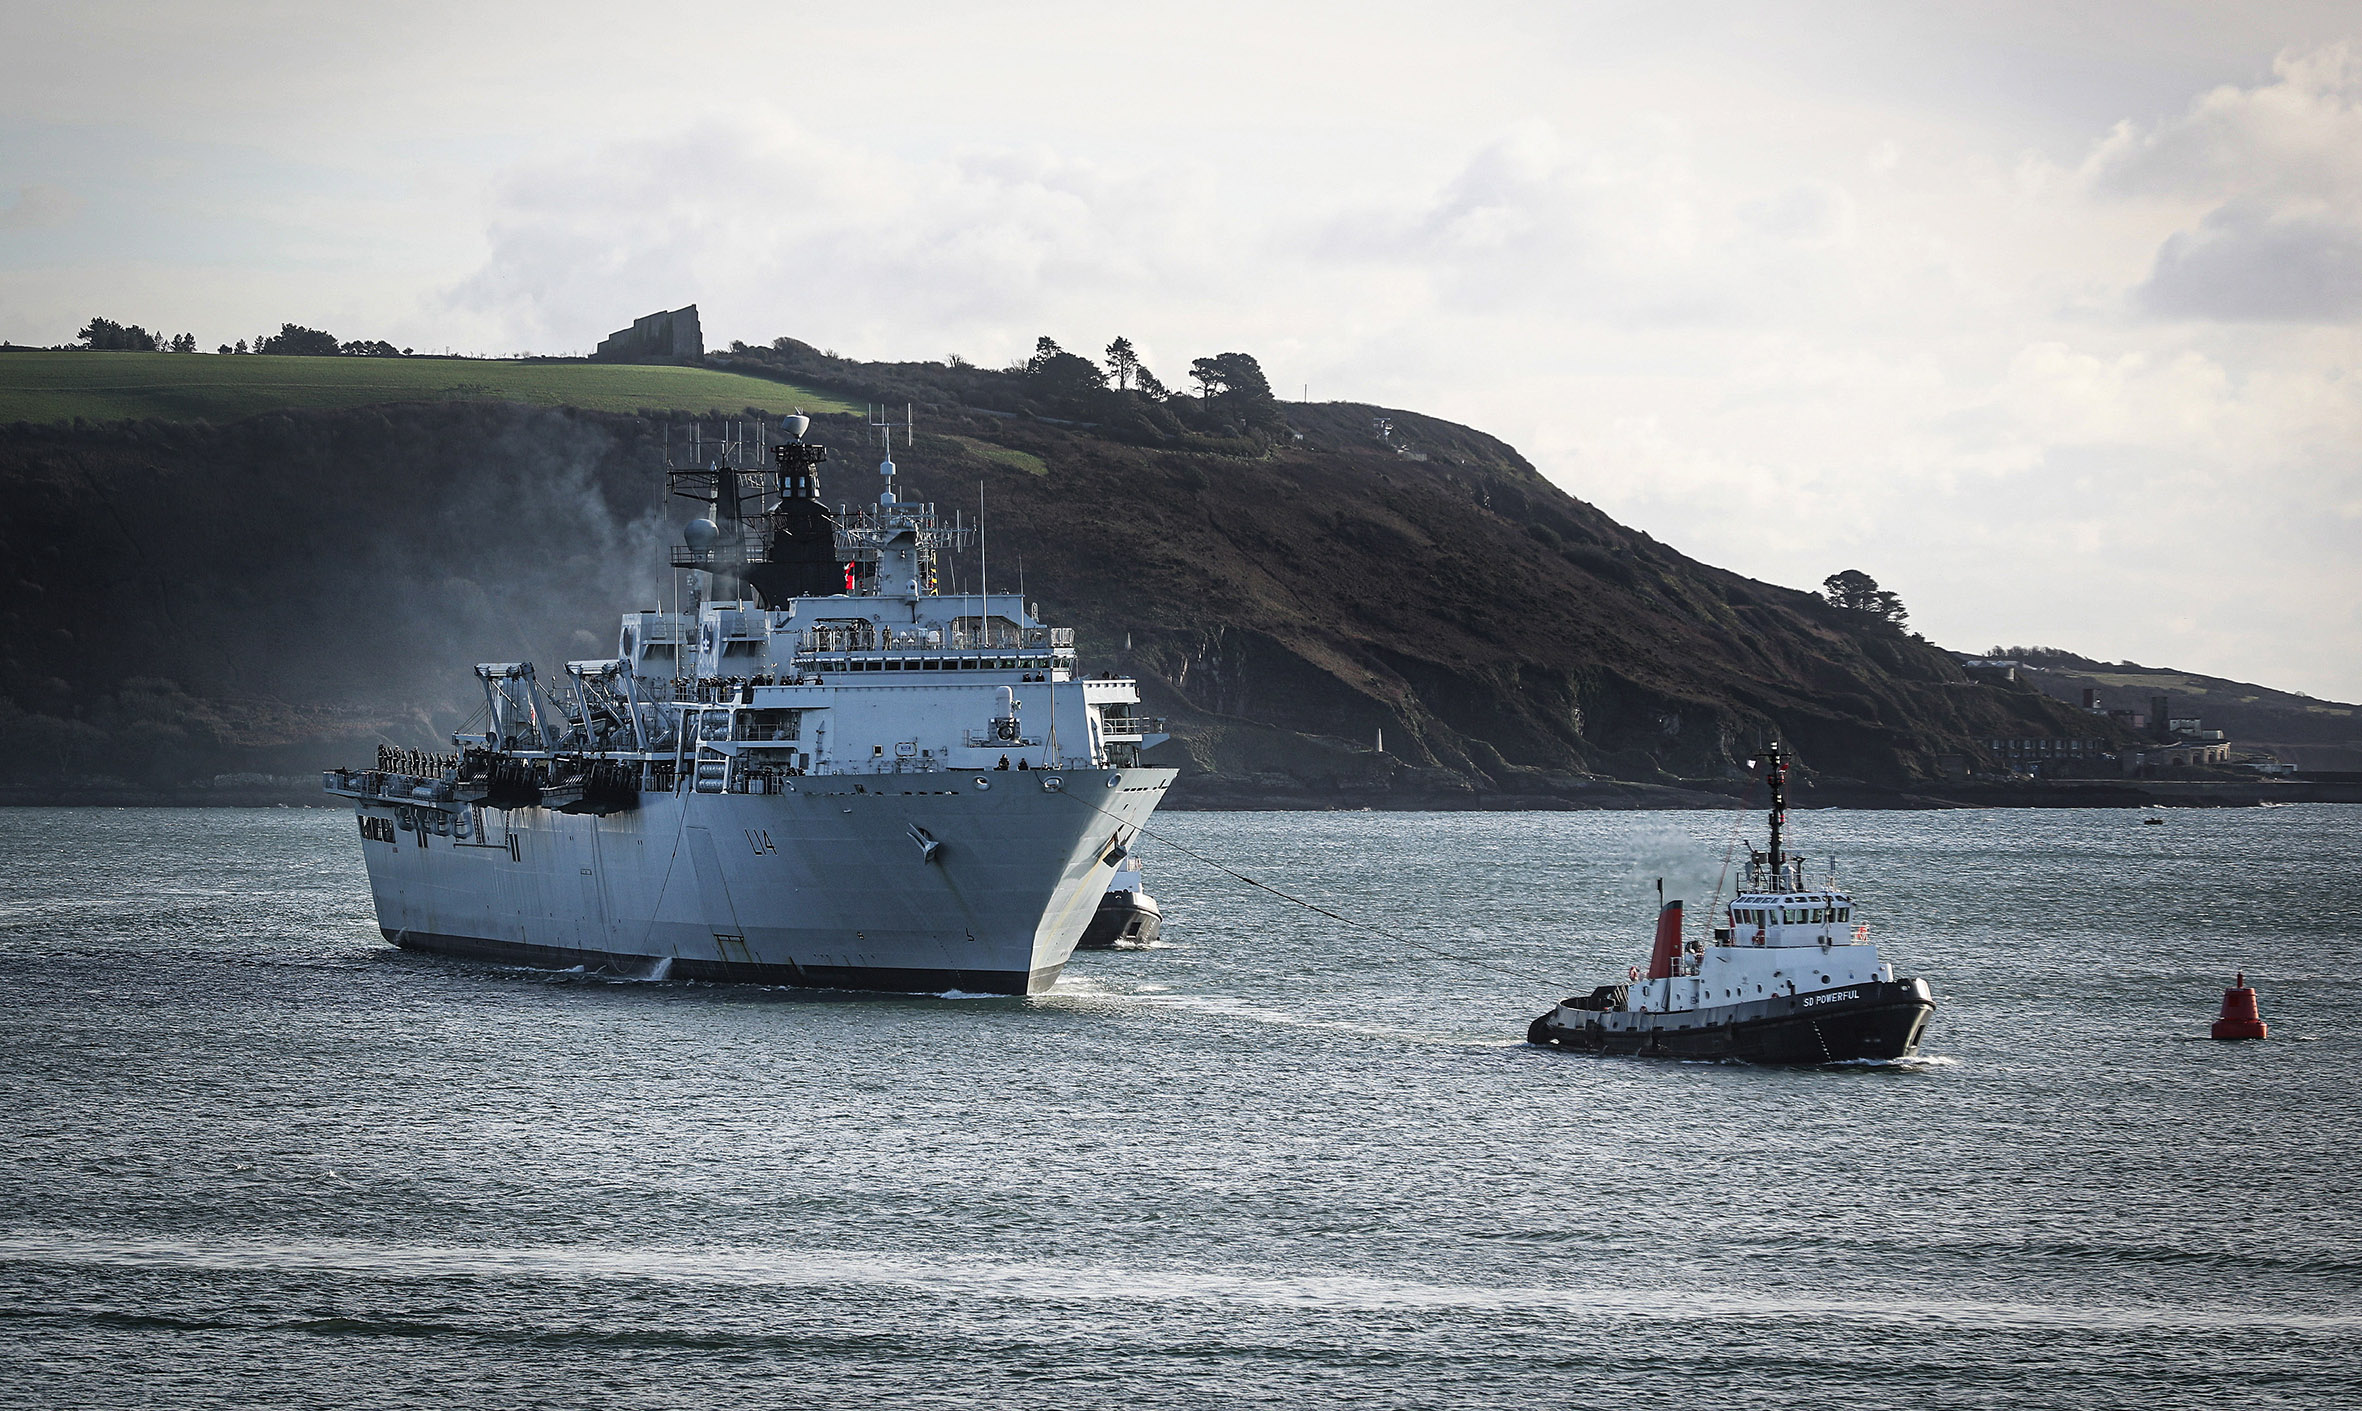 Royal Navy HMS Albion (L14) Returns Home After Experimental Deployment